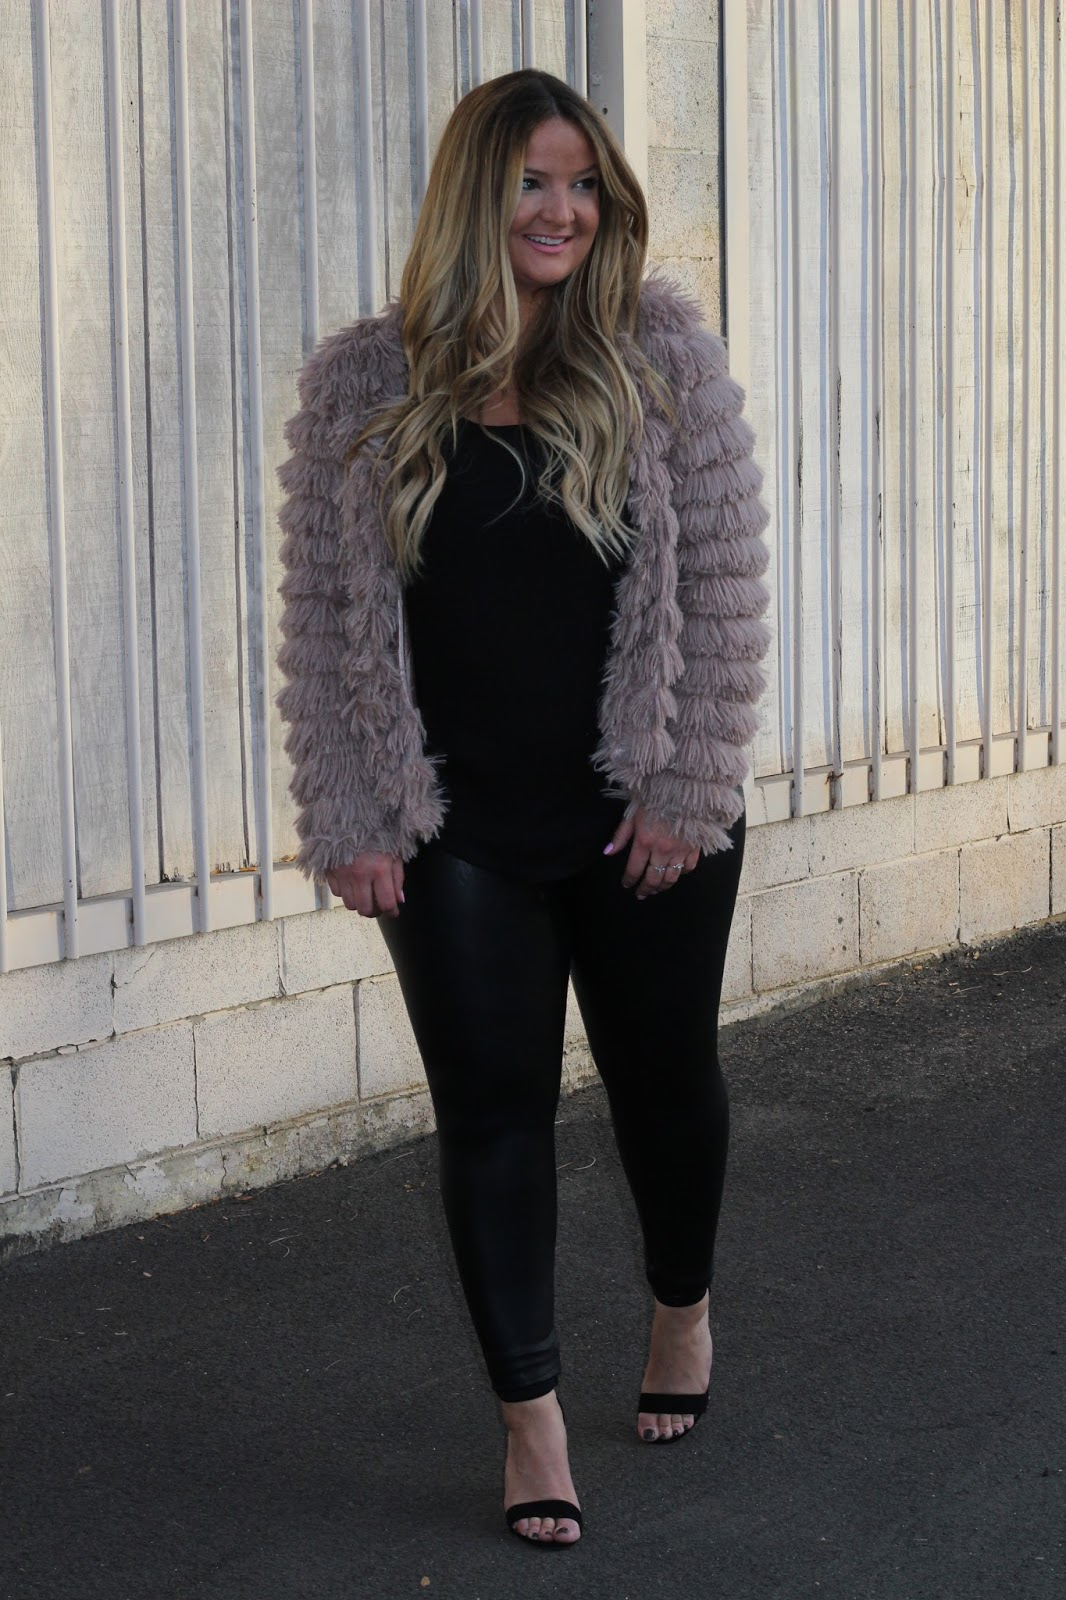 Shag jacket and monochromatic  by popular Denver fashion blogger Delayna Denaye